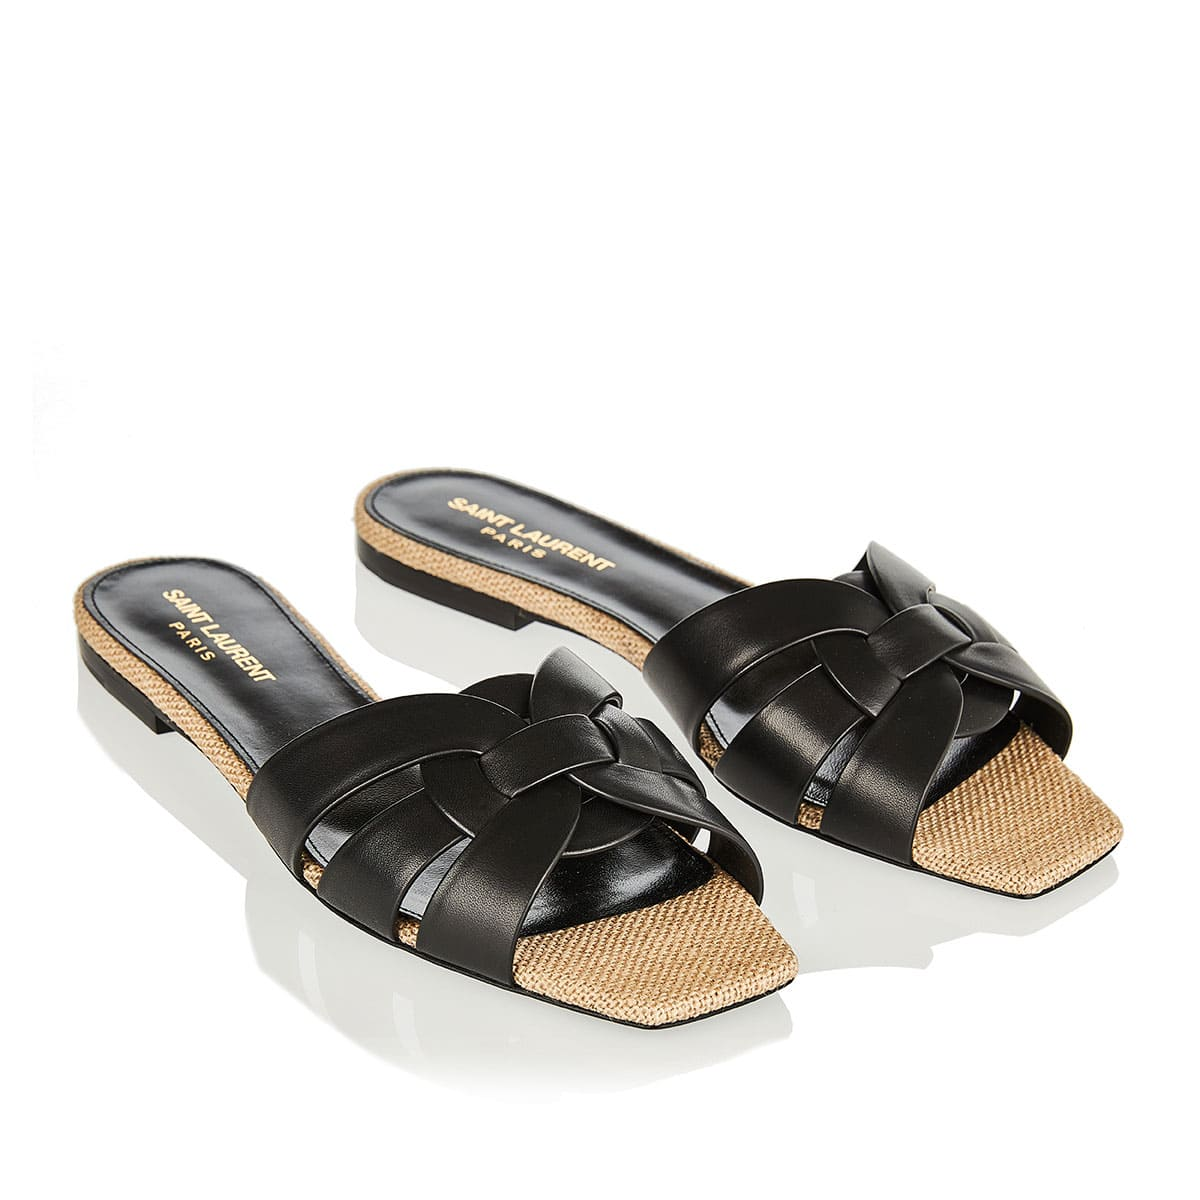 Tribute leather and rope flat sandals